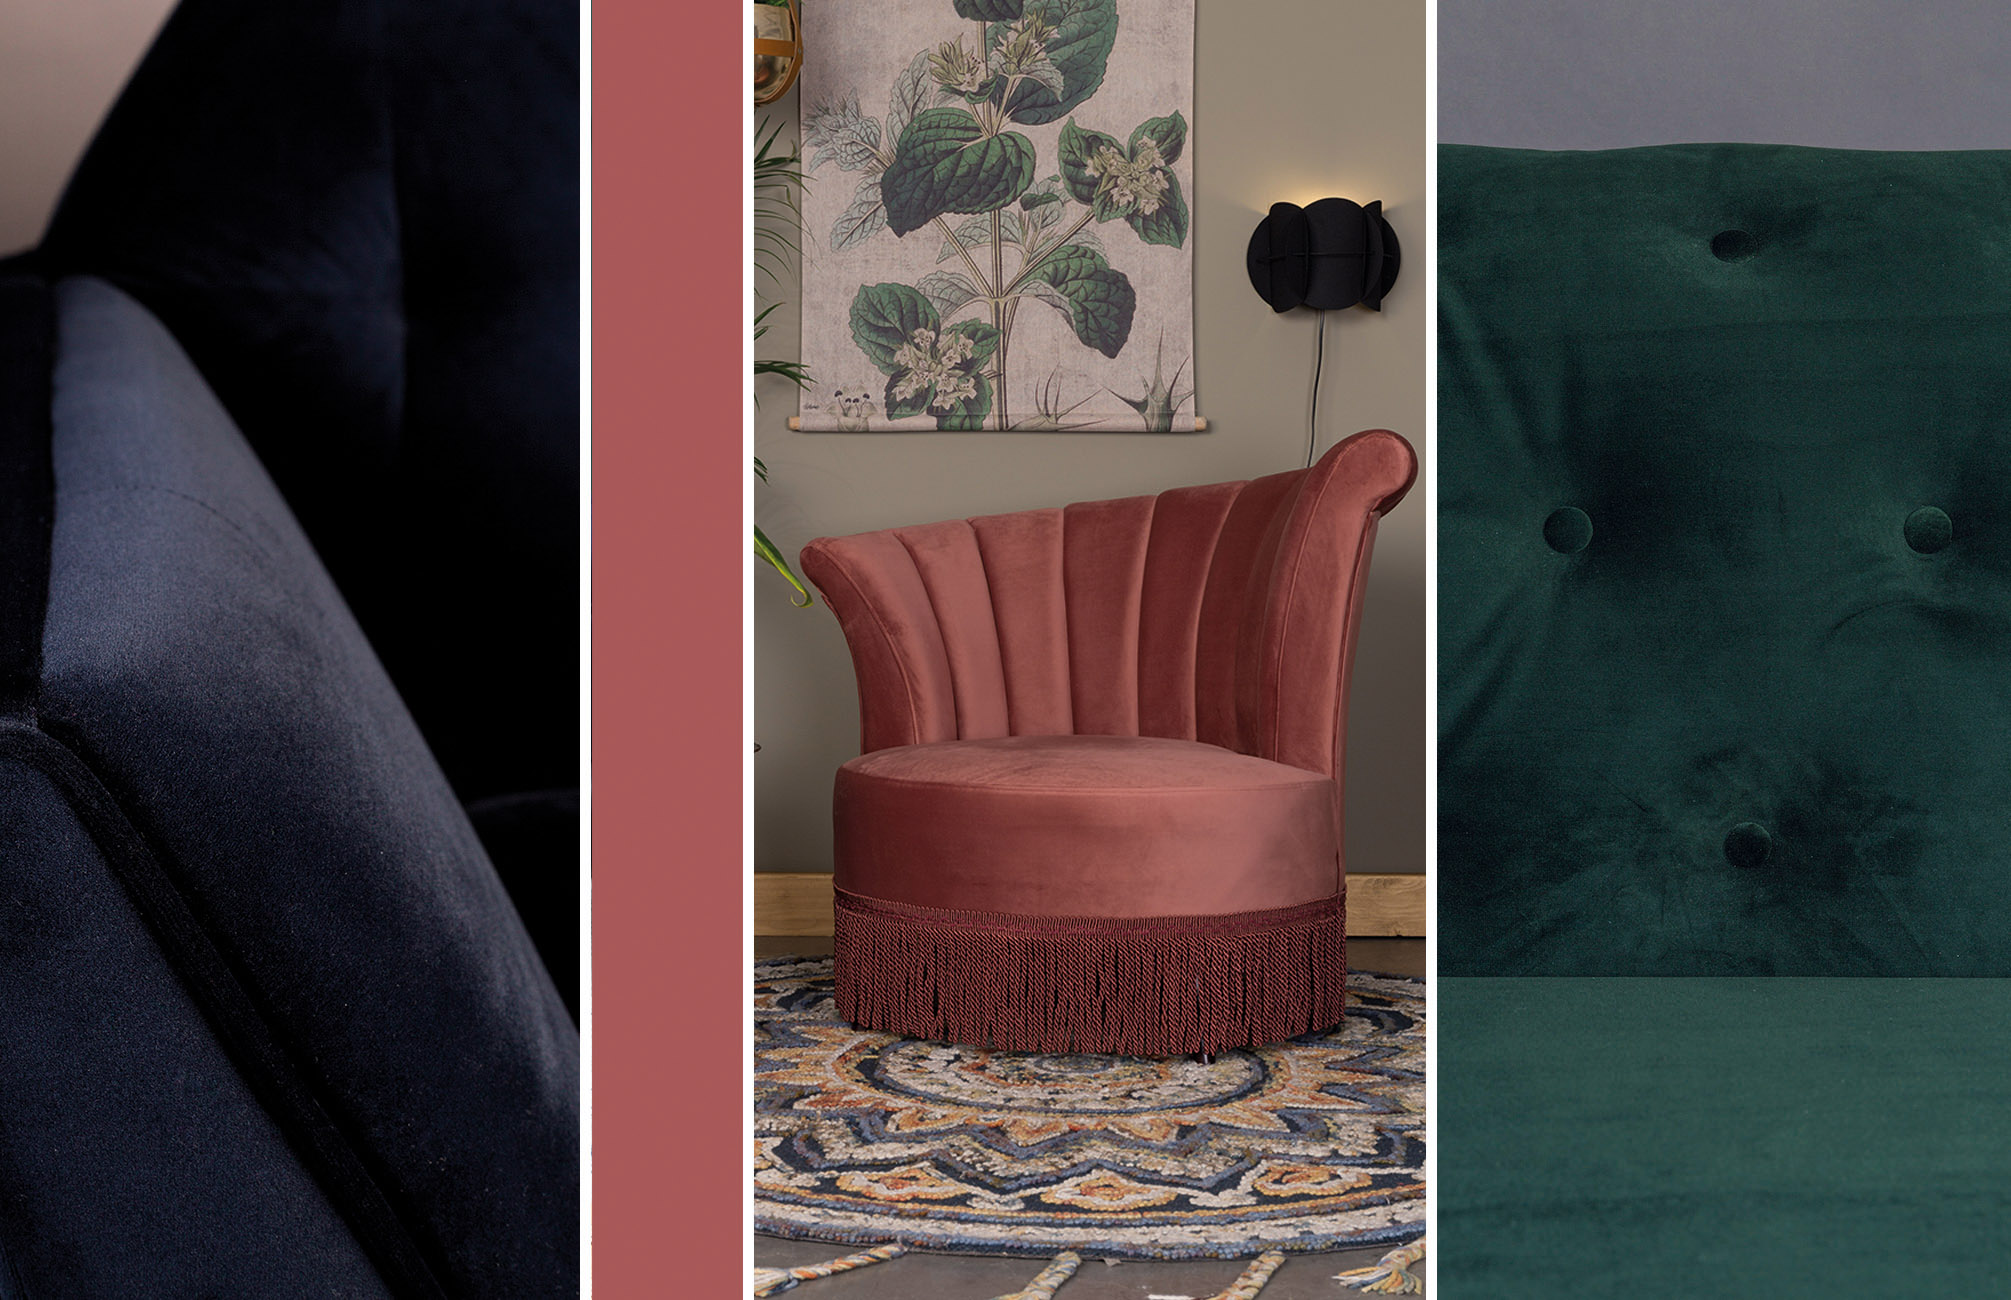 Fluwelen Stoel Groen : Interieurtrend 2018 inherited elegance dutchbone